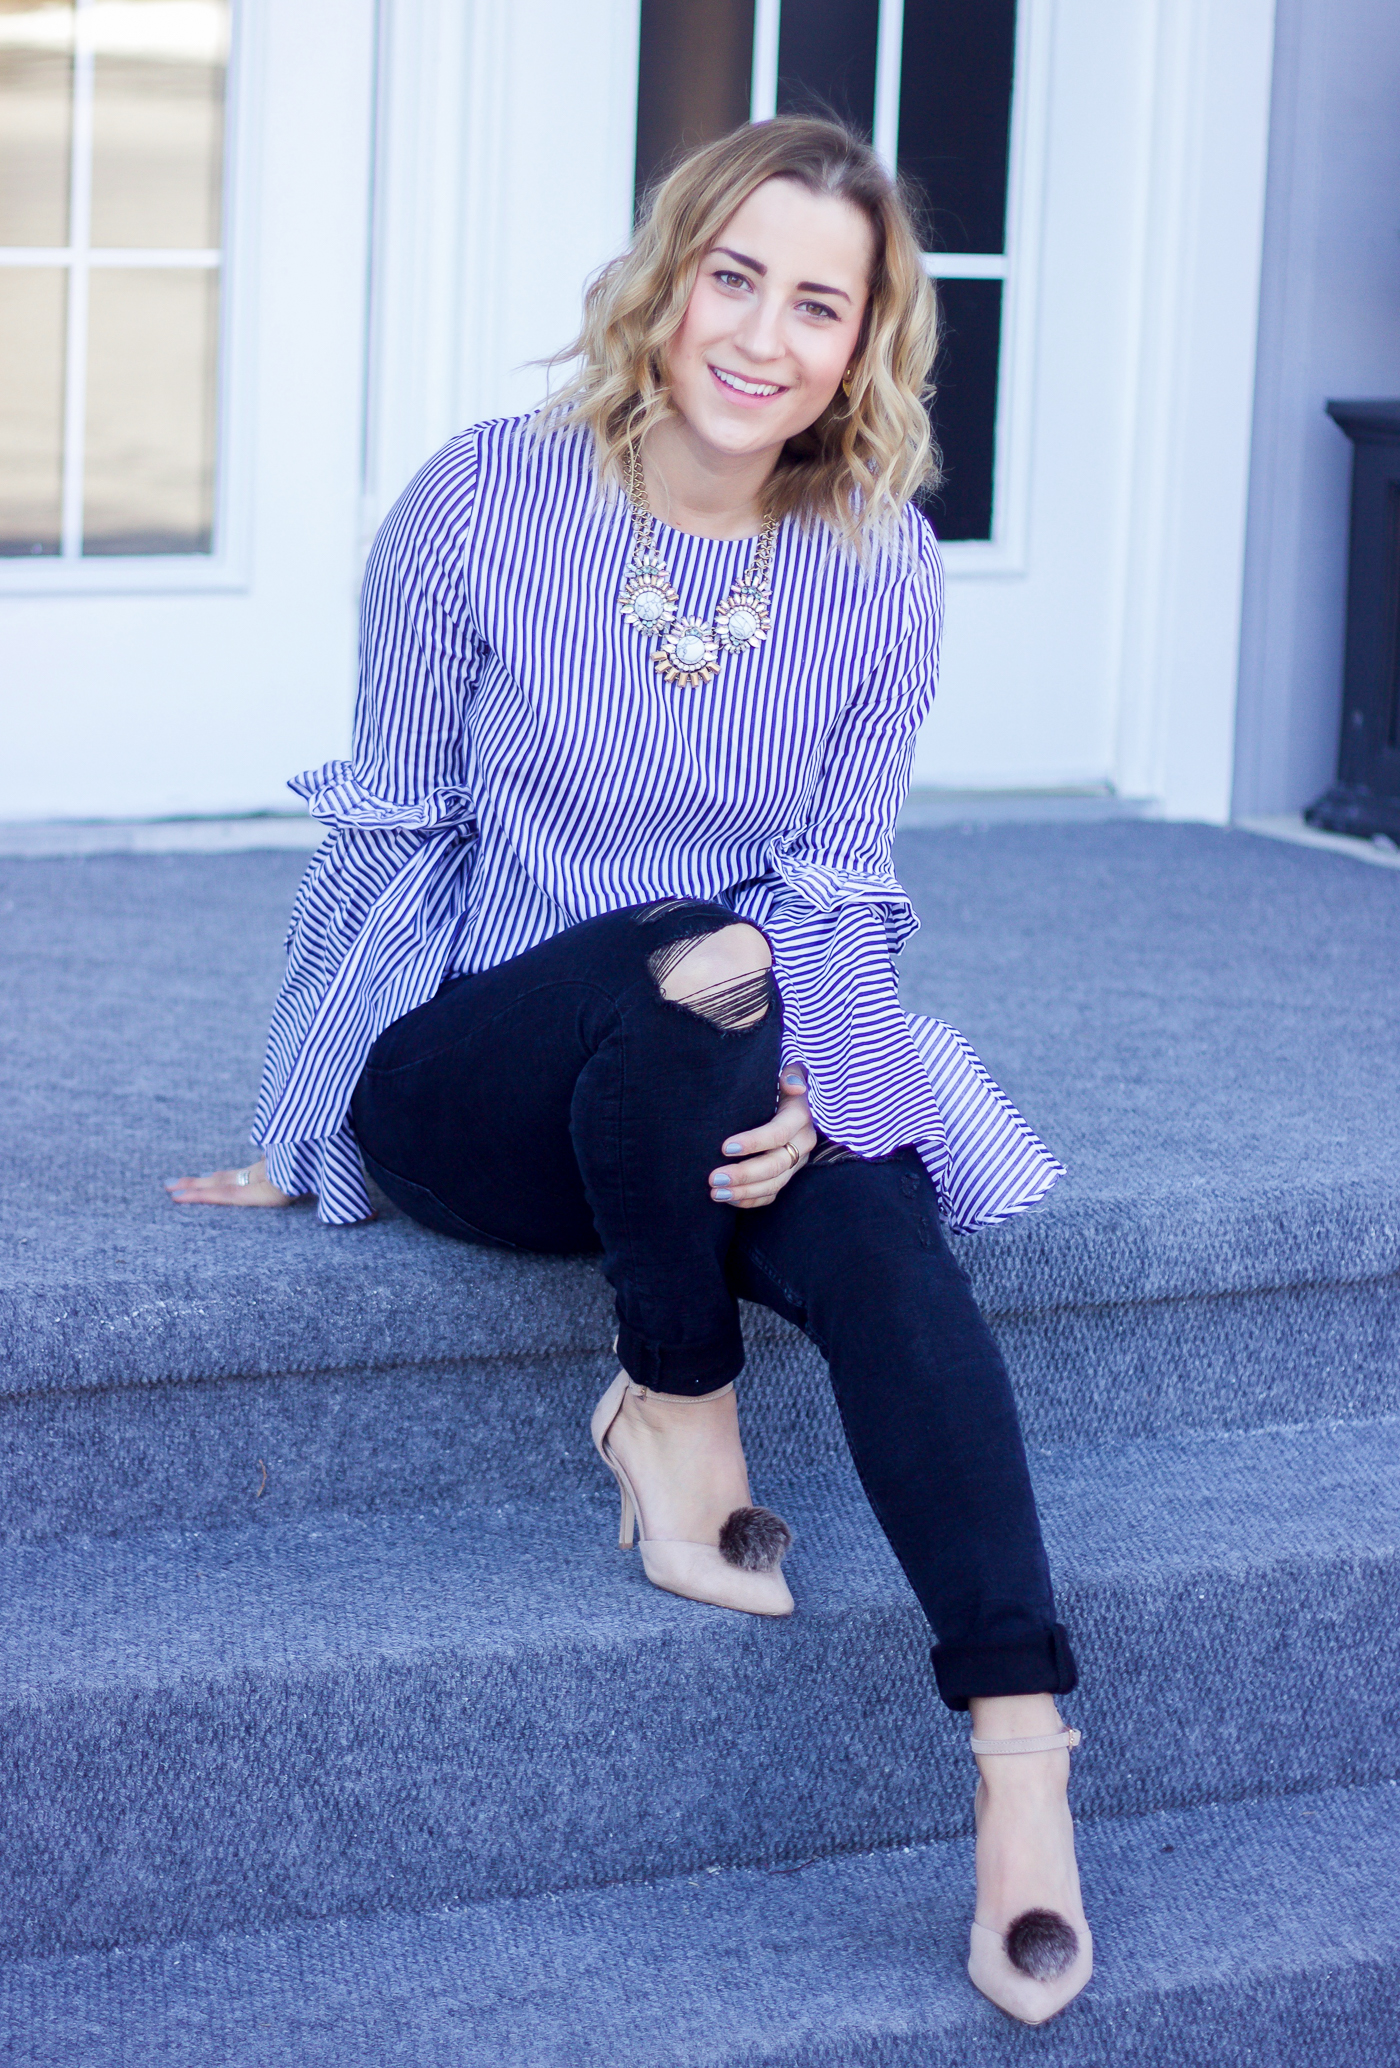 Jackie Goldhar is a Toronto-based lifestyle and fashion blogger, wearing a striped top from Chicwish and pumps with pombons to accessorize